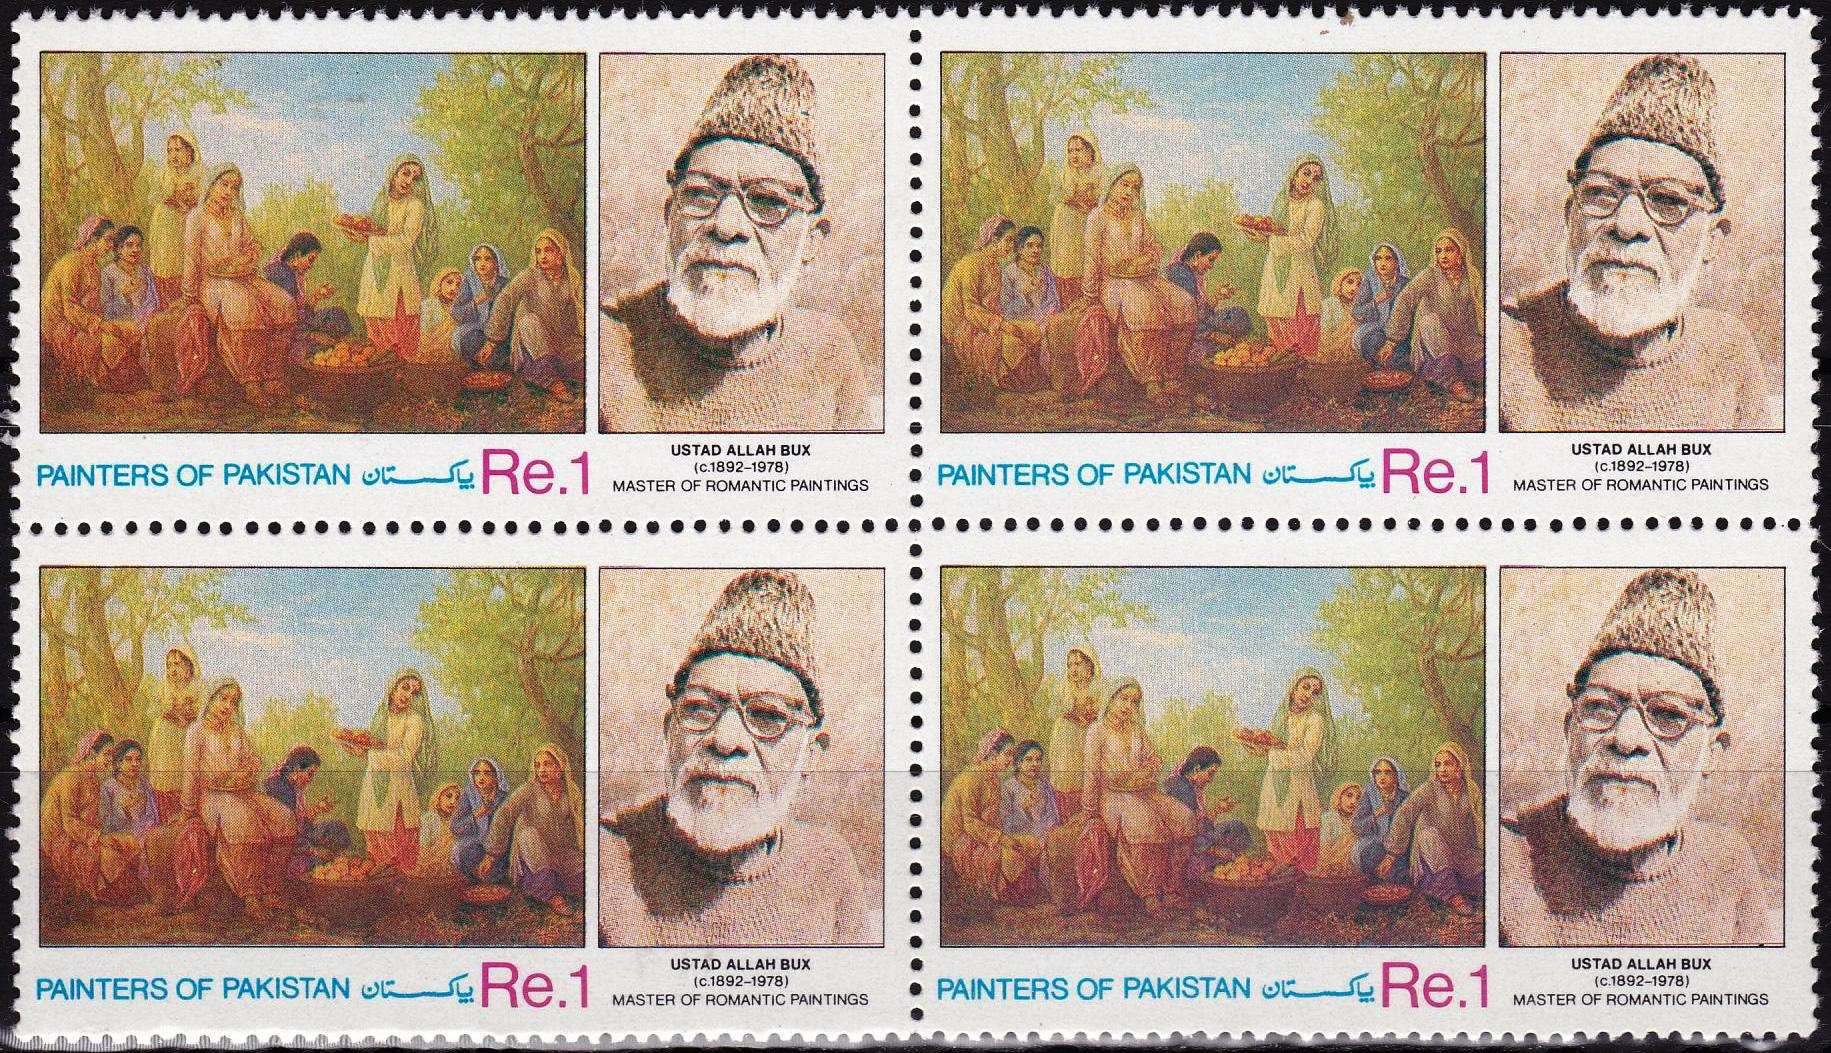 Pakistan Stamps 1991 Painters of Pakistan Ustad Allahbux